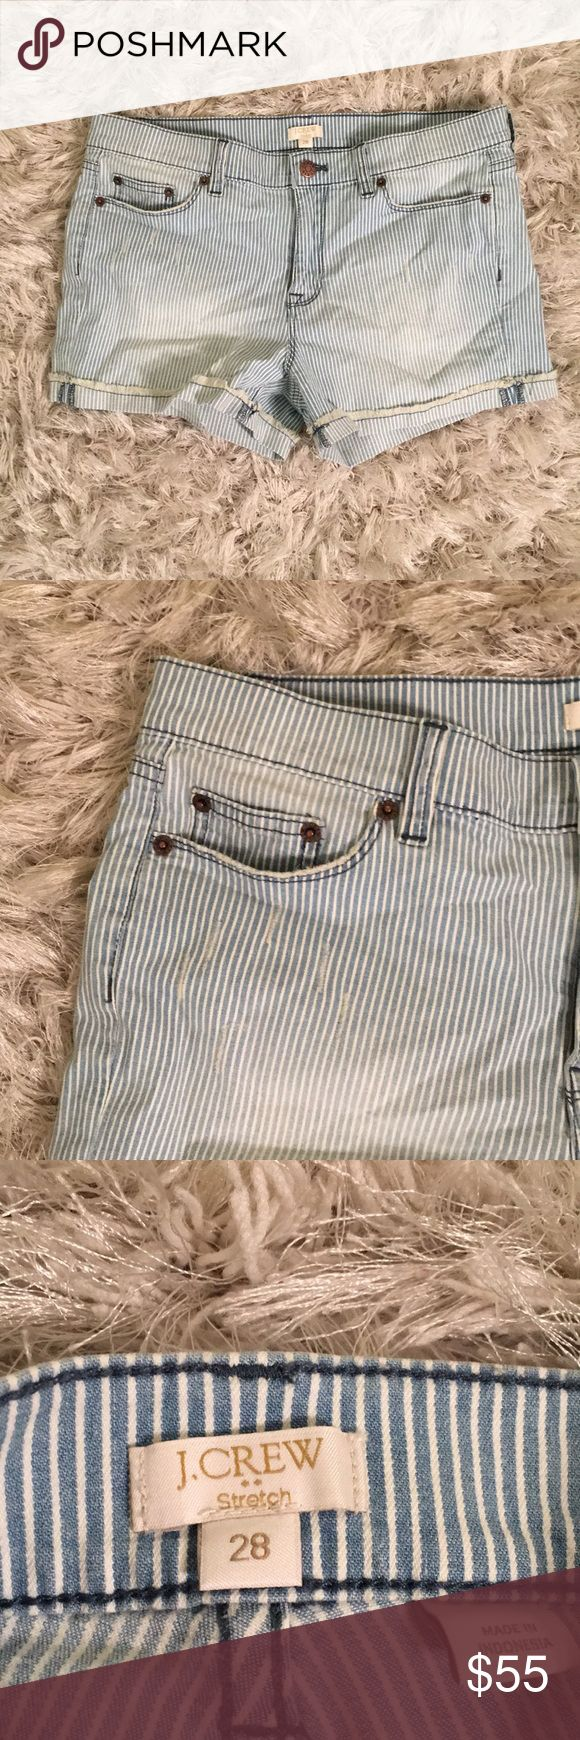 NWT JCrew pinstripe stretch jean shorts 😍 Brand new with tags, pinstripe stretch jean shorts .. so cute & comfortable! Slightly distressed throughout - make me an offer! J. Crew Shorts Jean Shorts